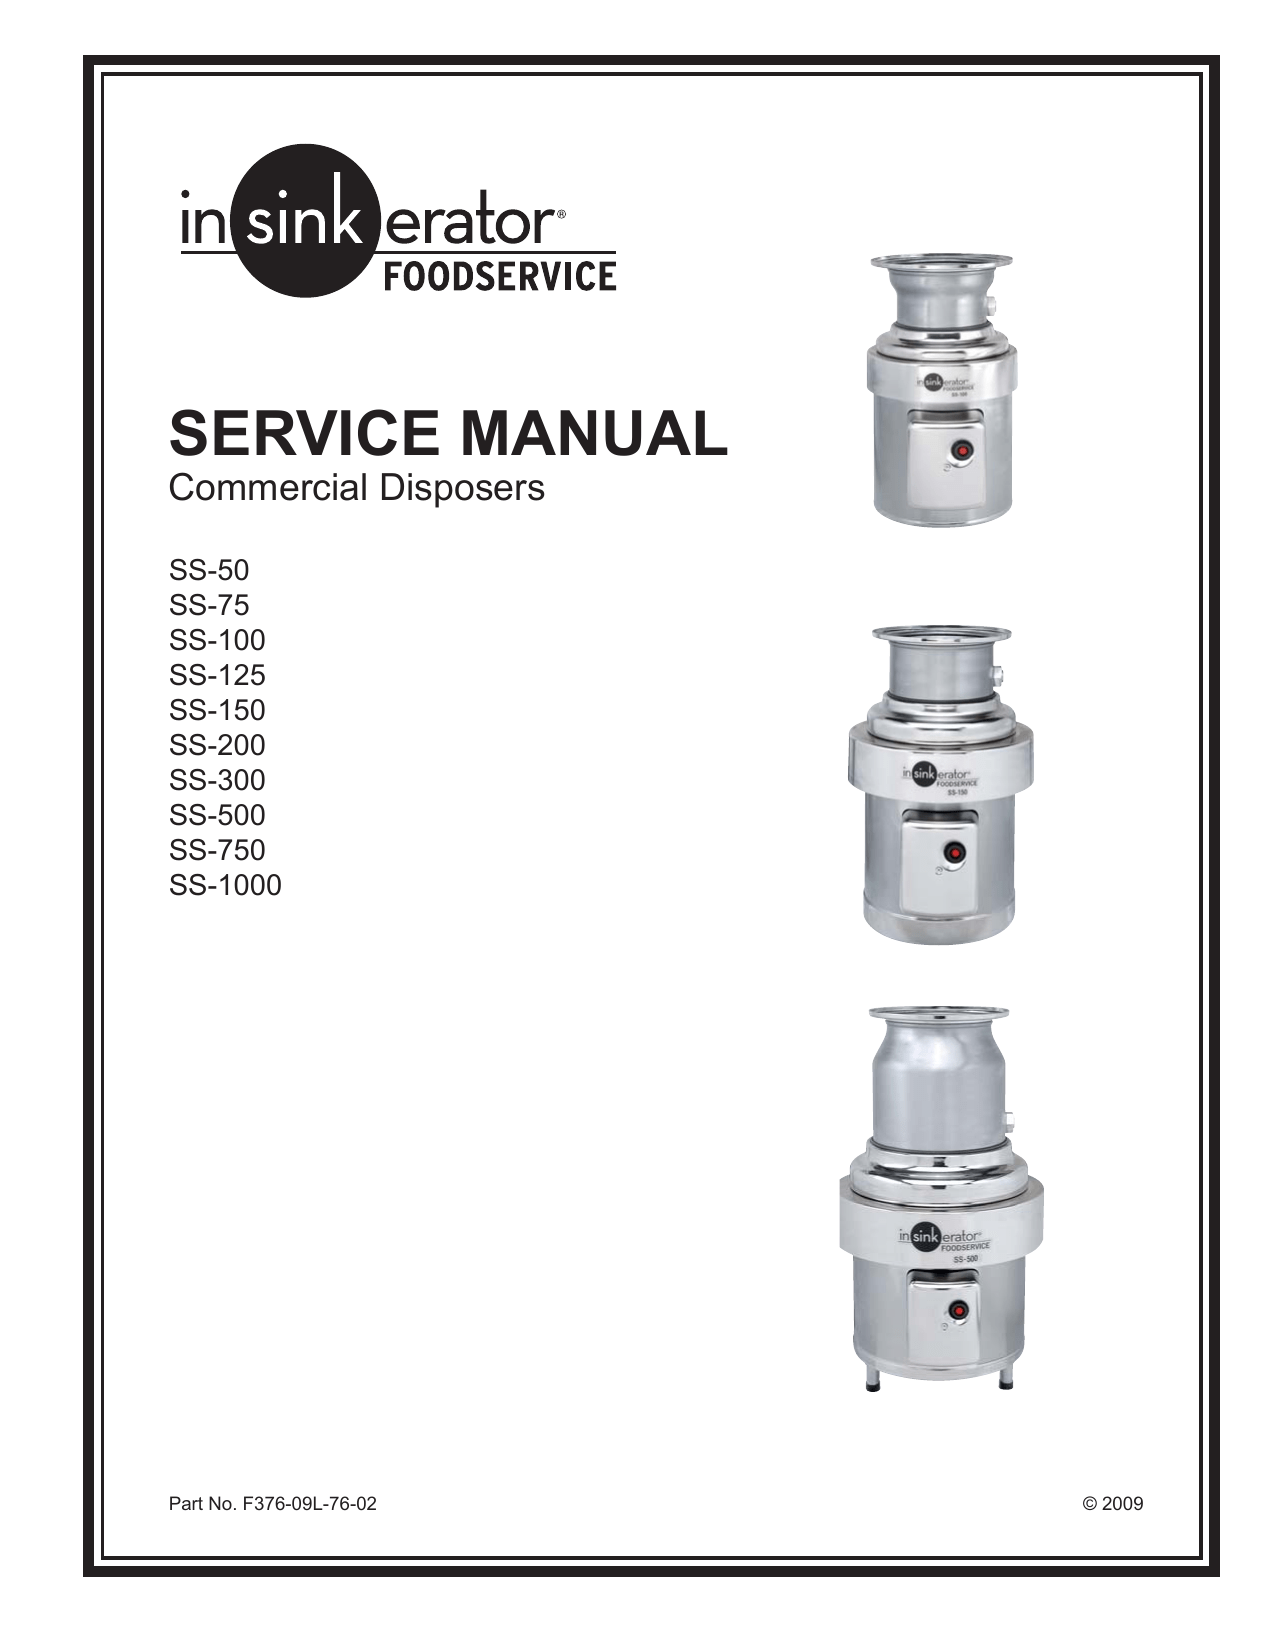 Service Manual For Insinkerator Commercial Disposers